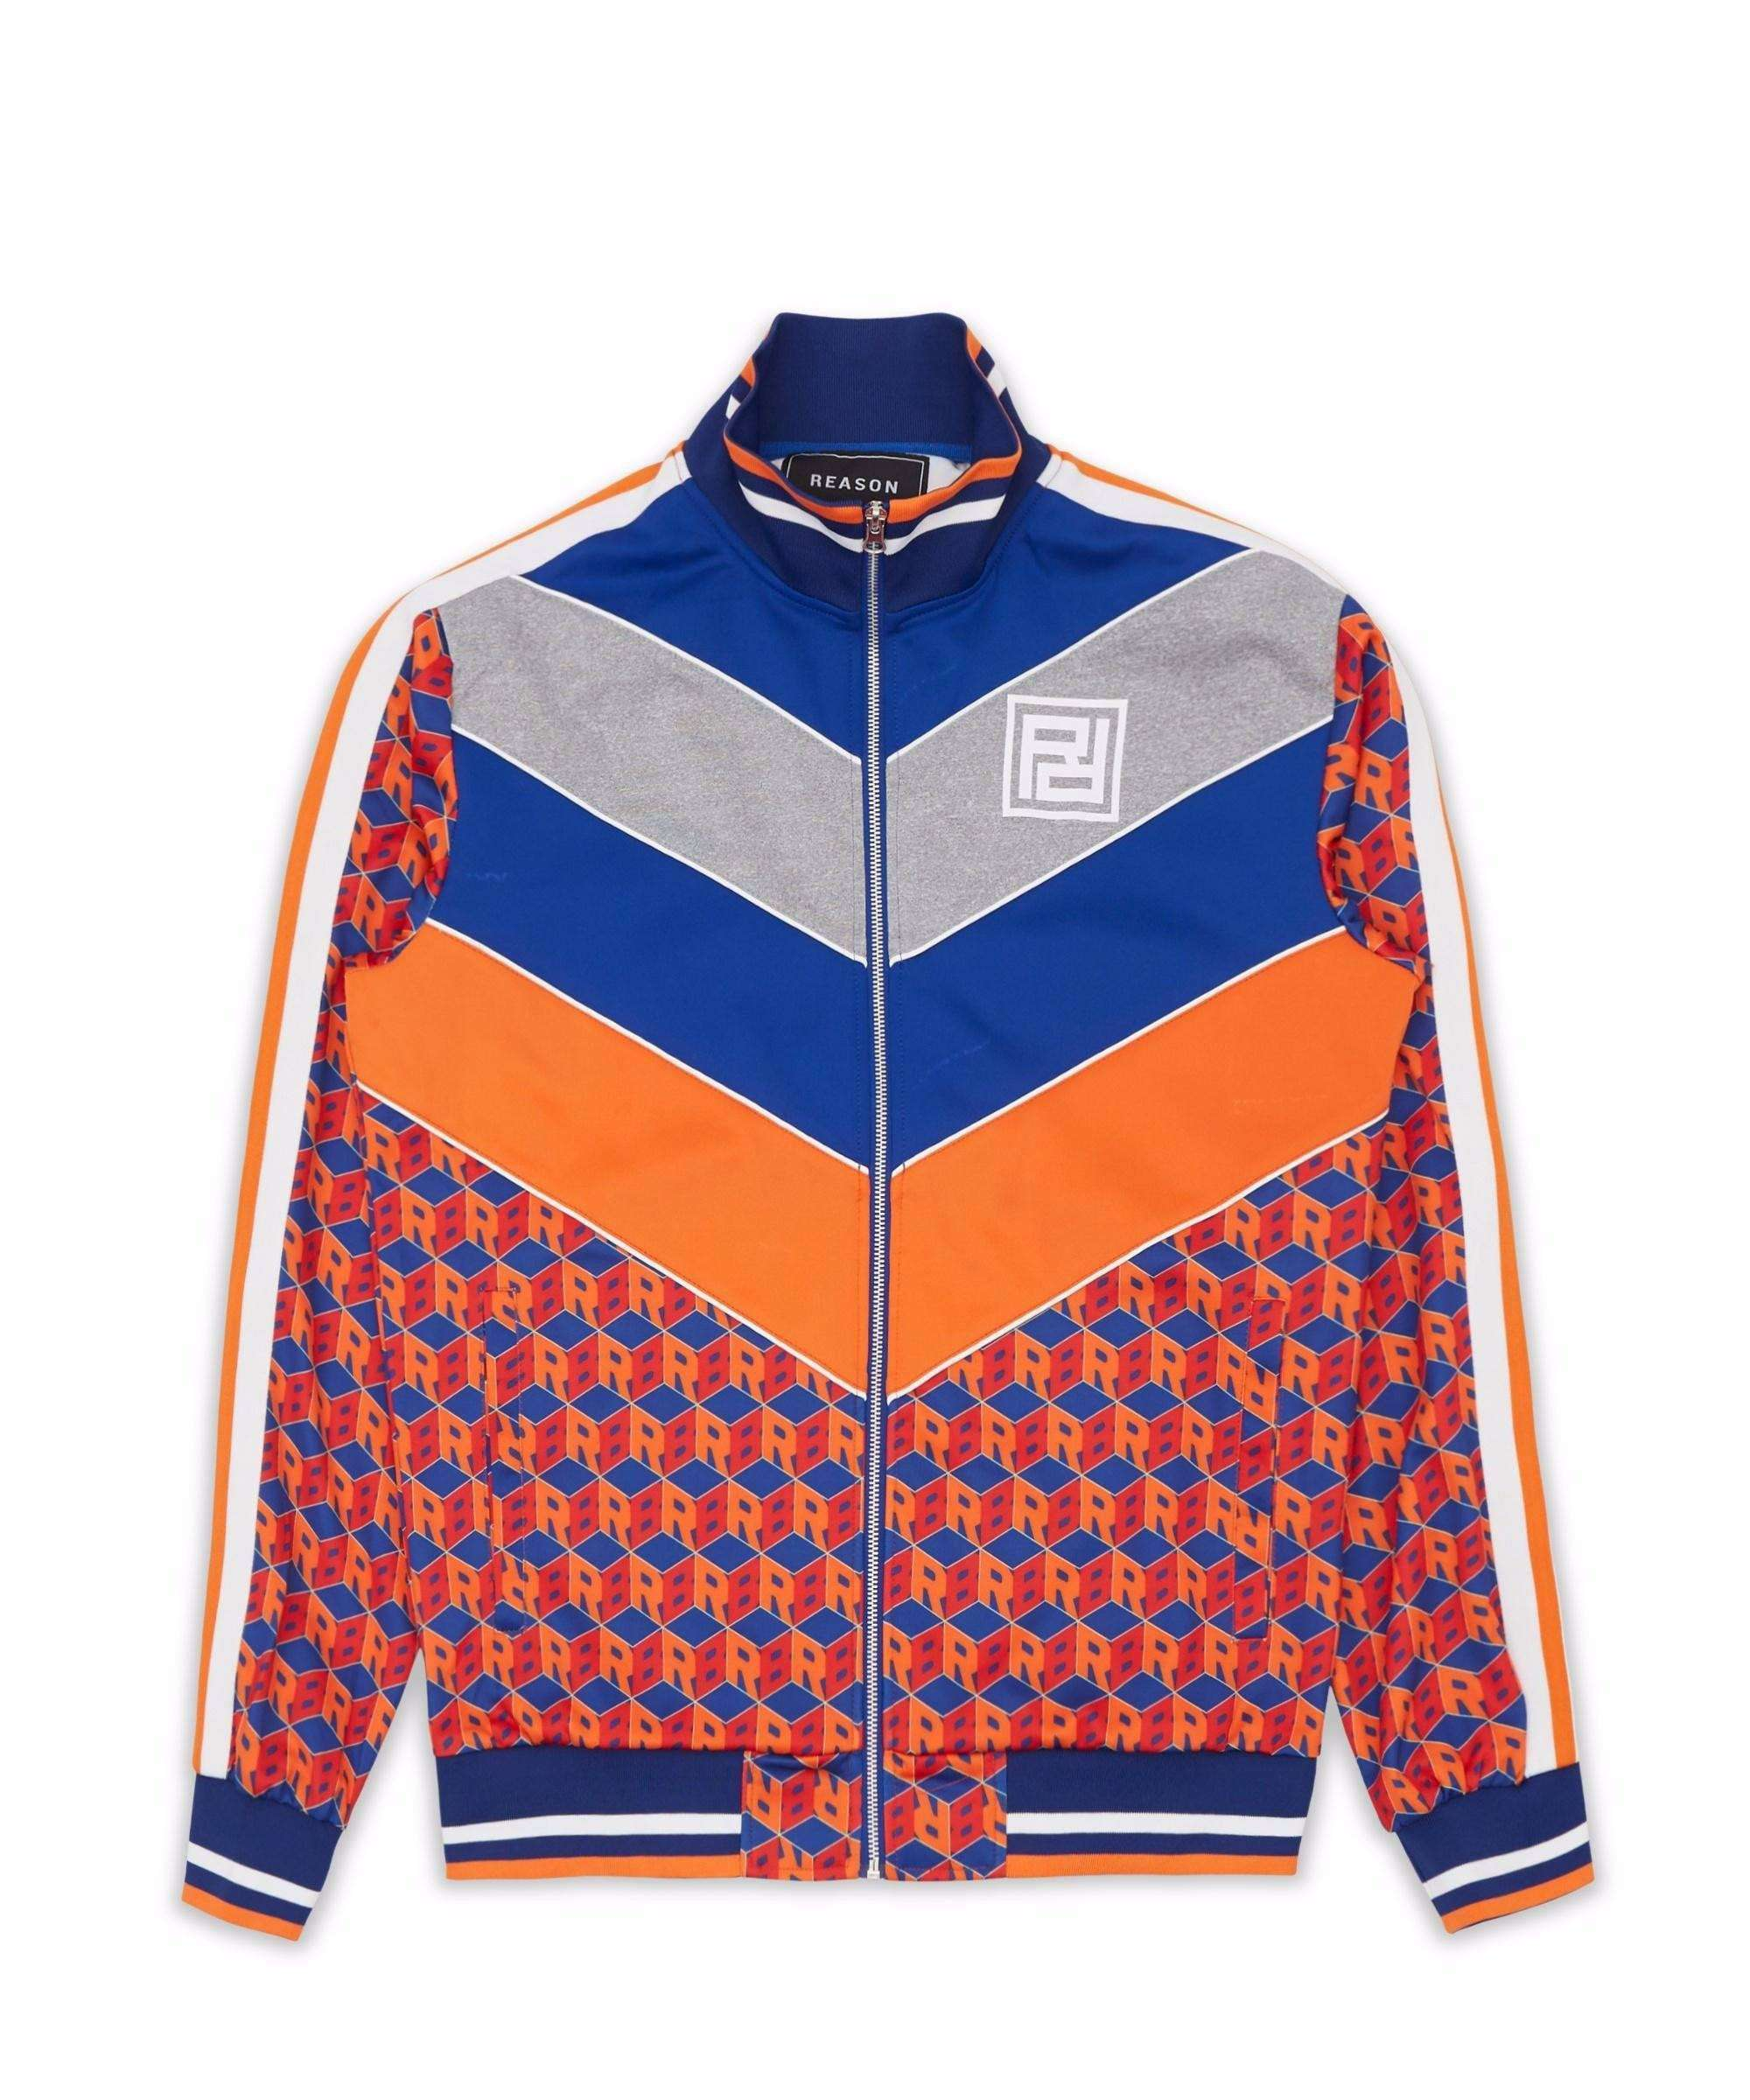 APEX TRACK JACKET - ORANGE Reason Clothing